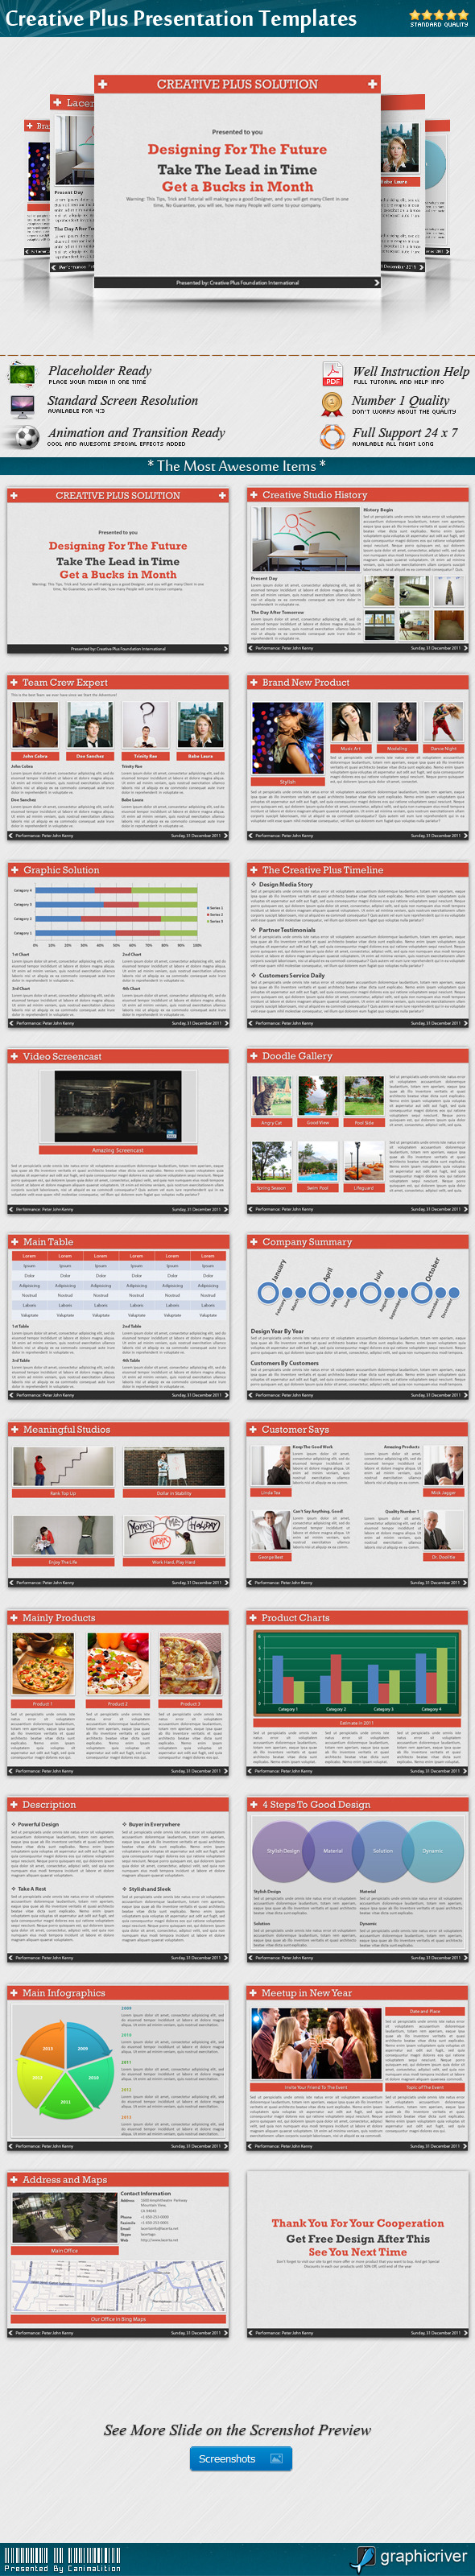 Creative Plus Presentation Templates - Creative PowerPoint Templates